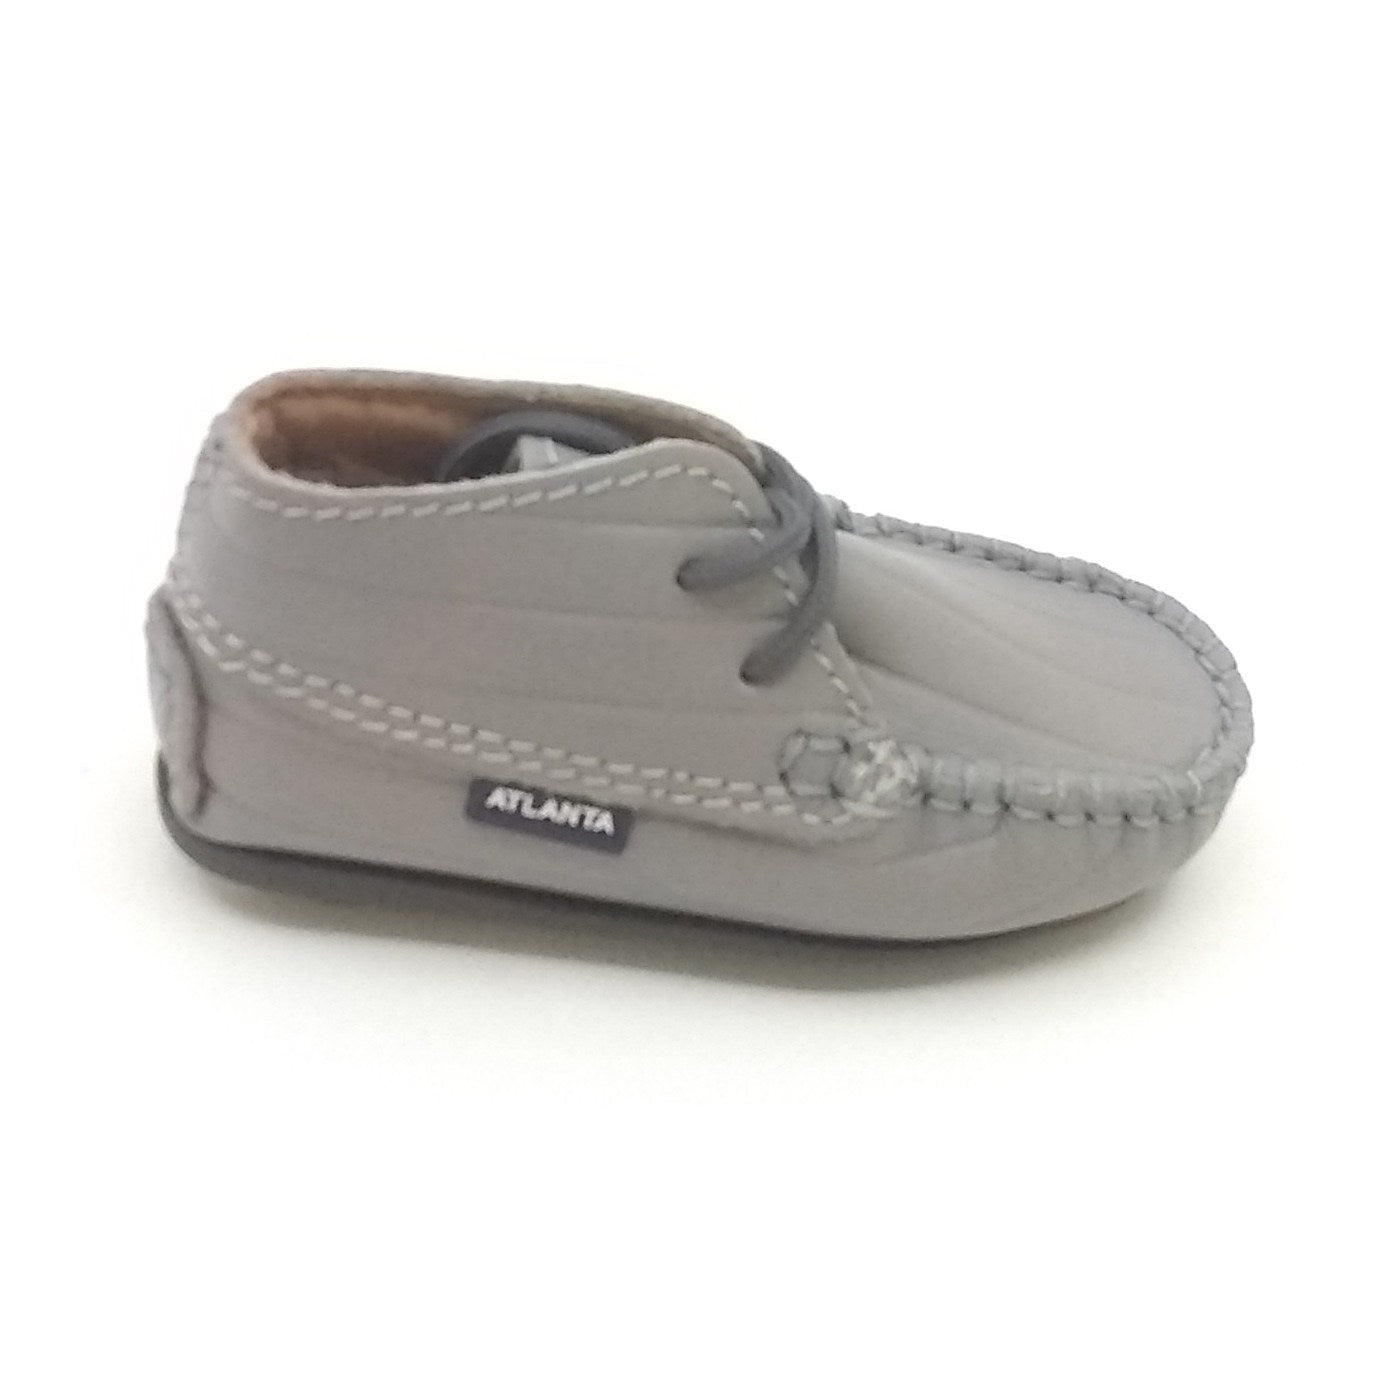 Atlanta Mocassin Gray Laceup First Shoe